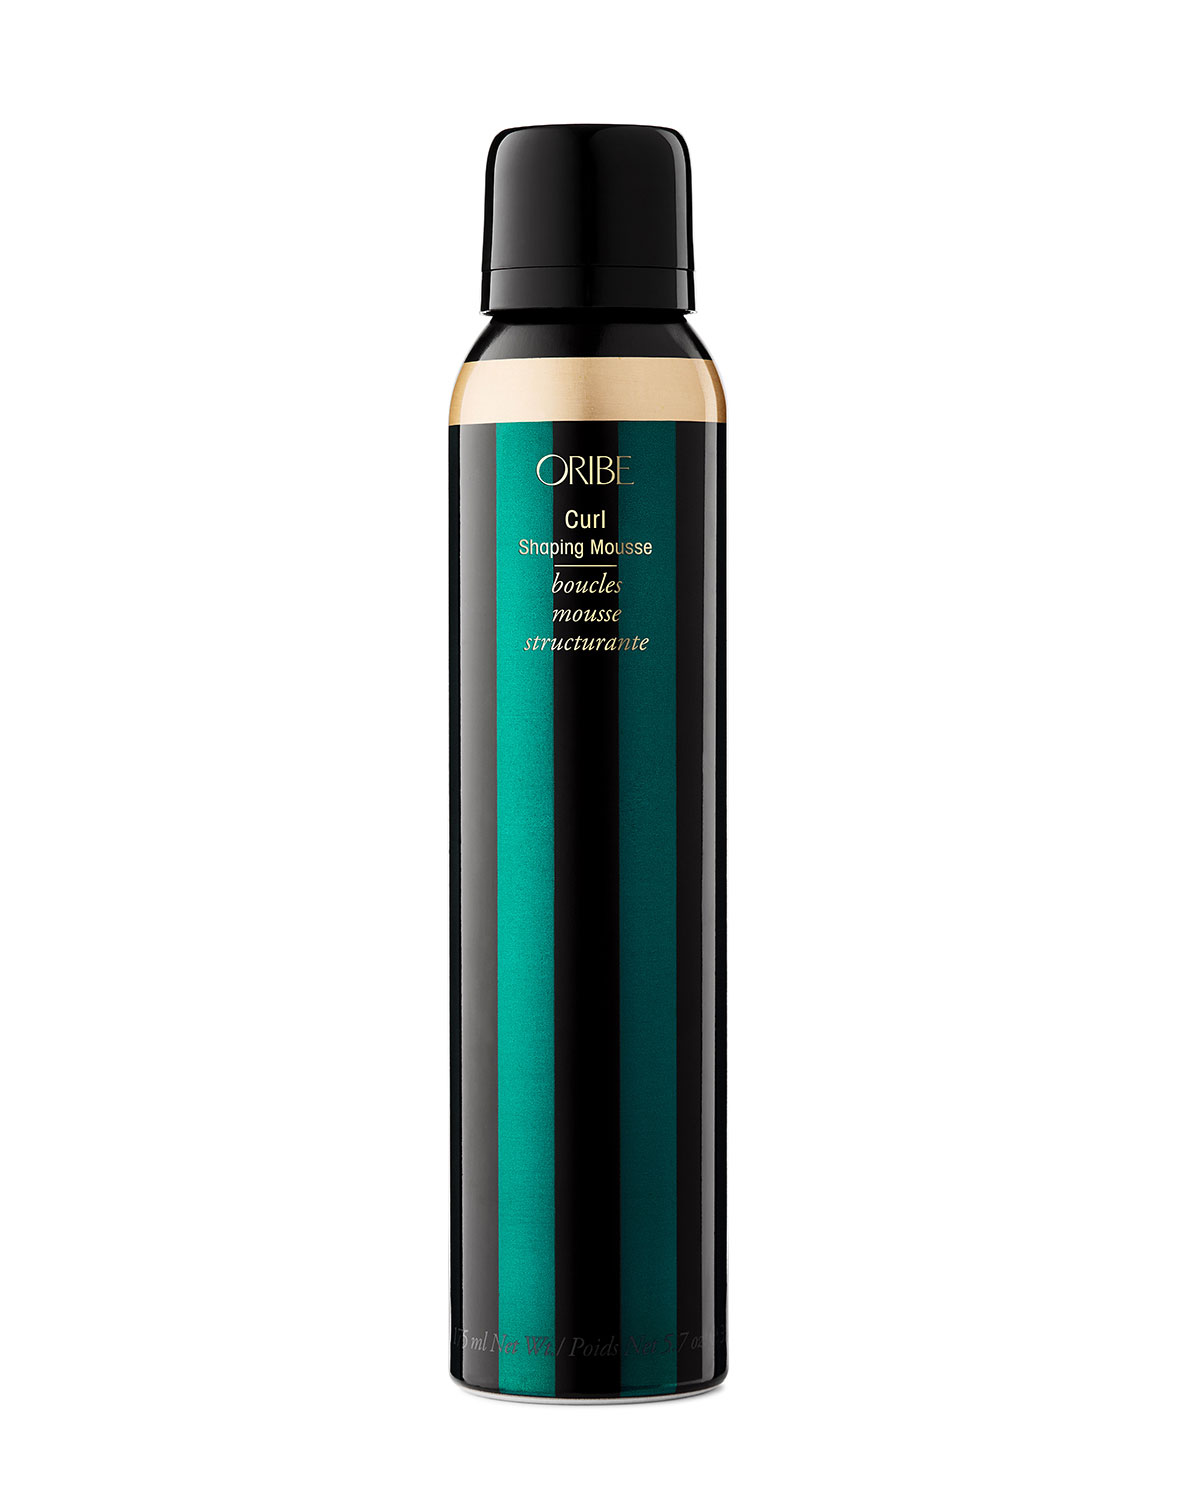 Oribe 5.7 oz. Curl Shaping Mousse